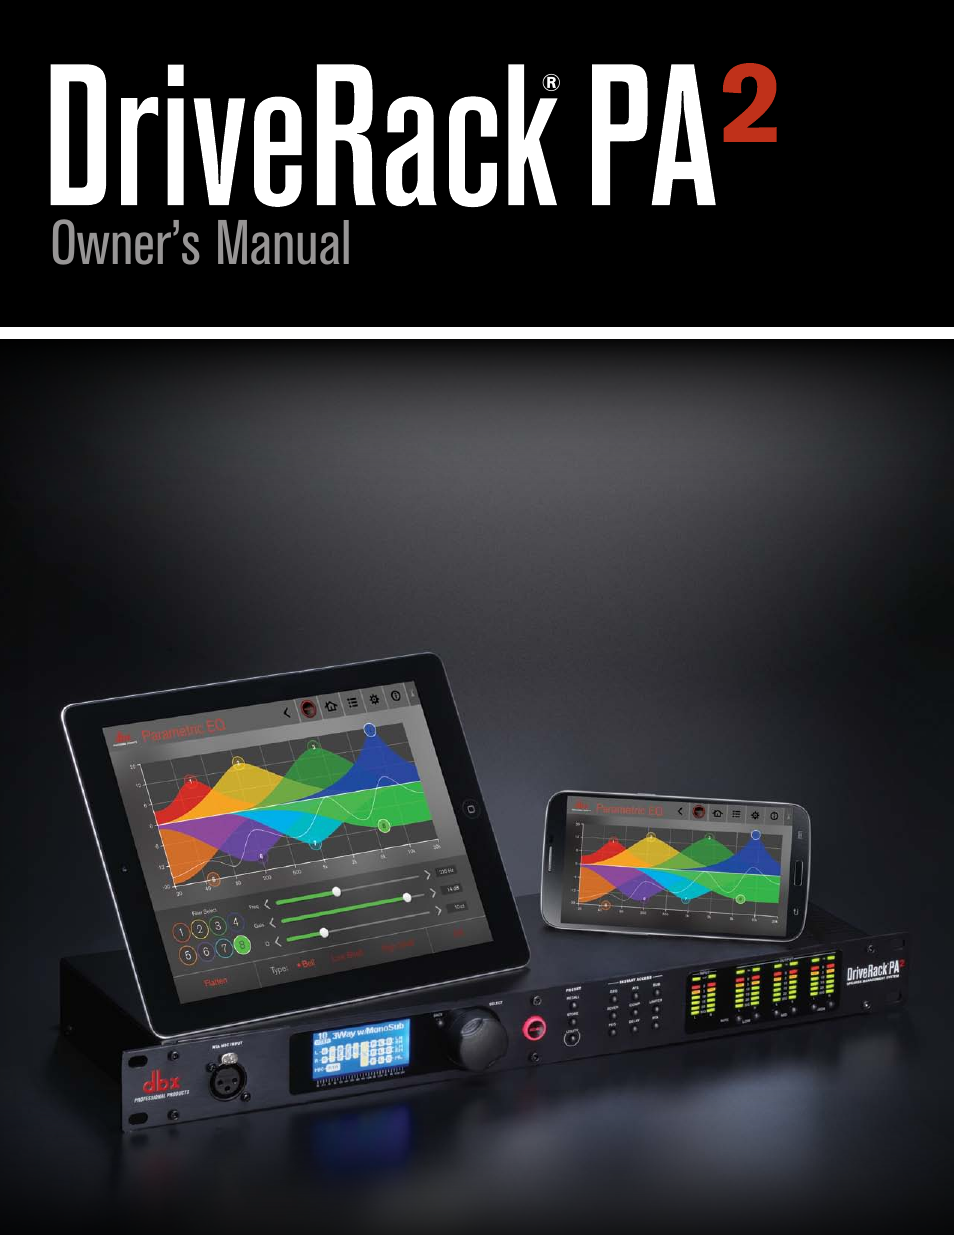 Dbx Driverack Pa2 User Manual 70 Pages